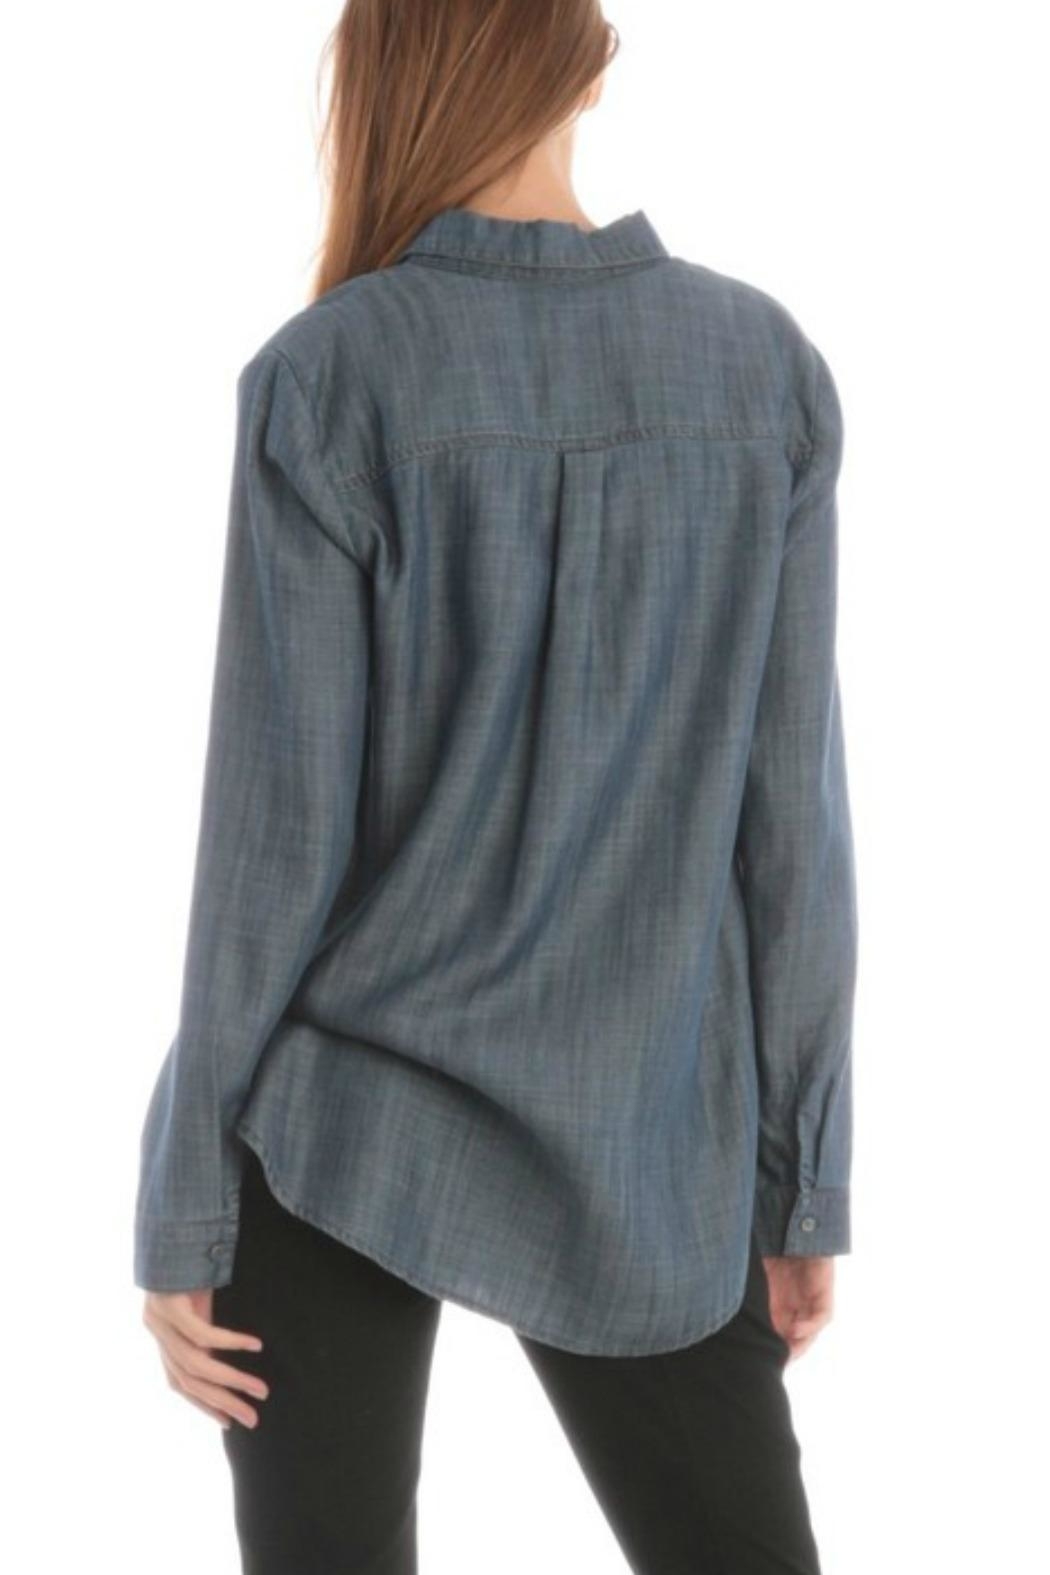 Current Air Jean Button-Down Shirt - Back Cropped Image